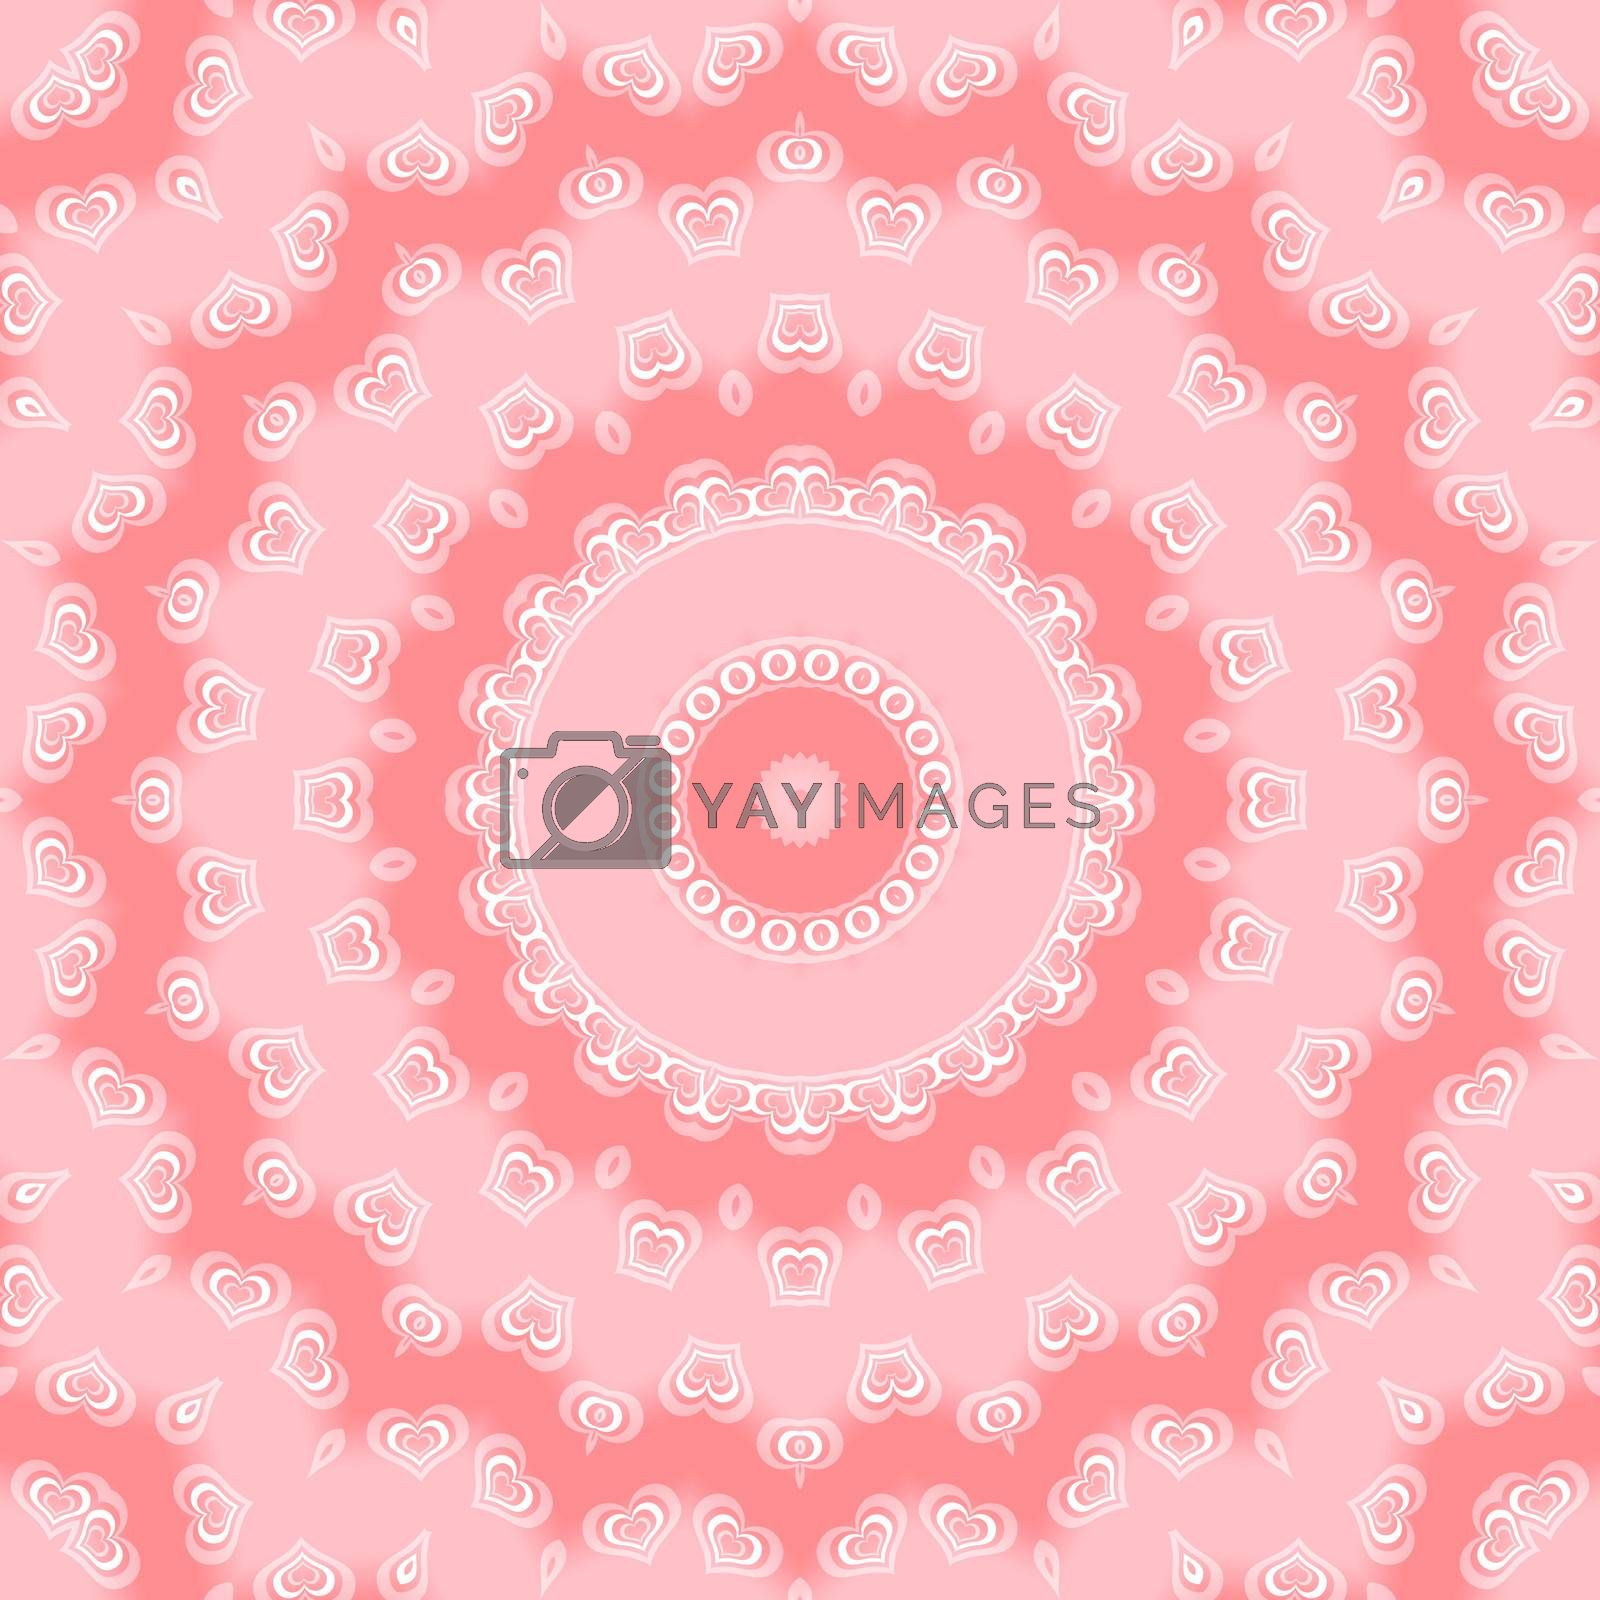 Pink background with abstract shapes and hearts